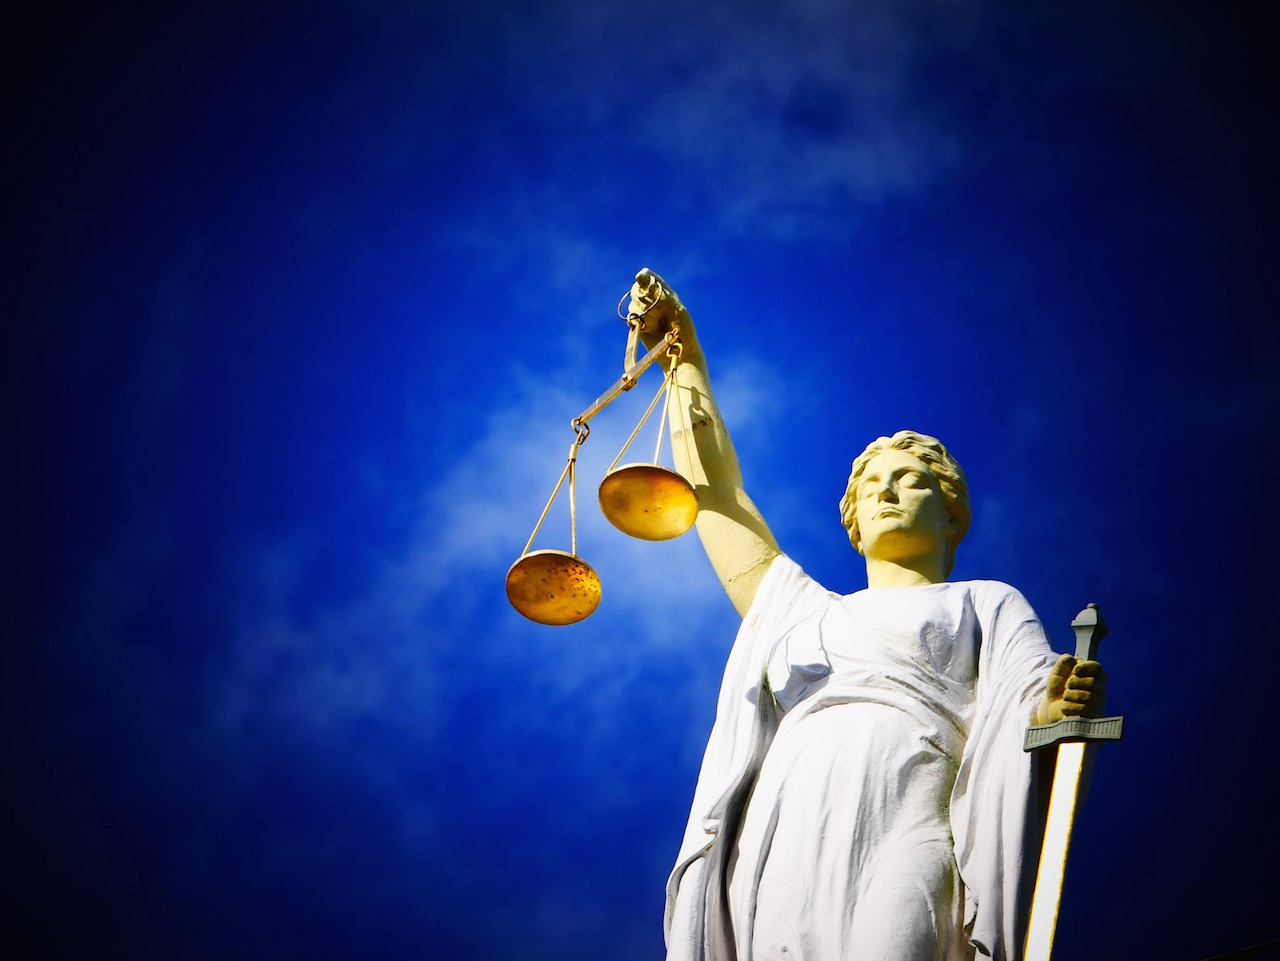 Justice_photo credit: AJEL licensed under Pixabay